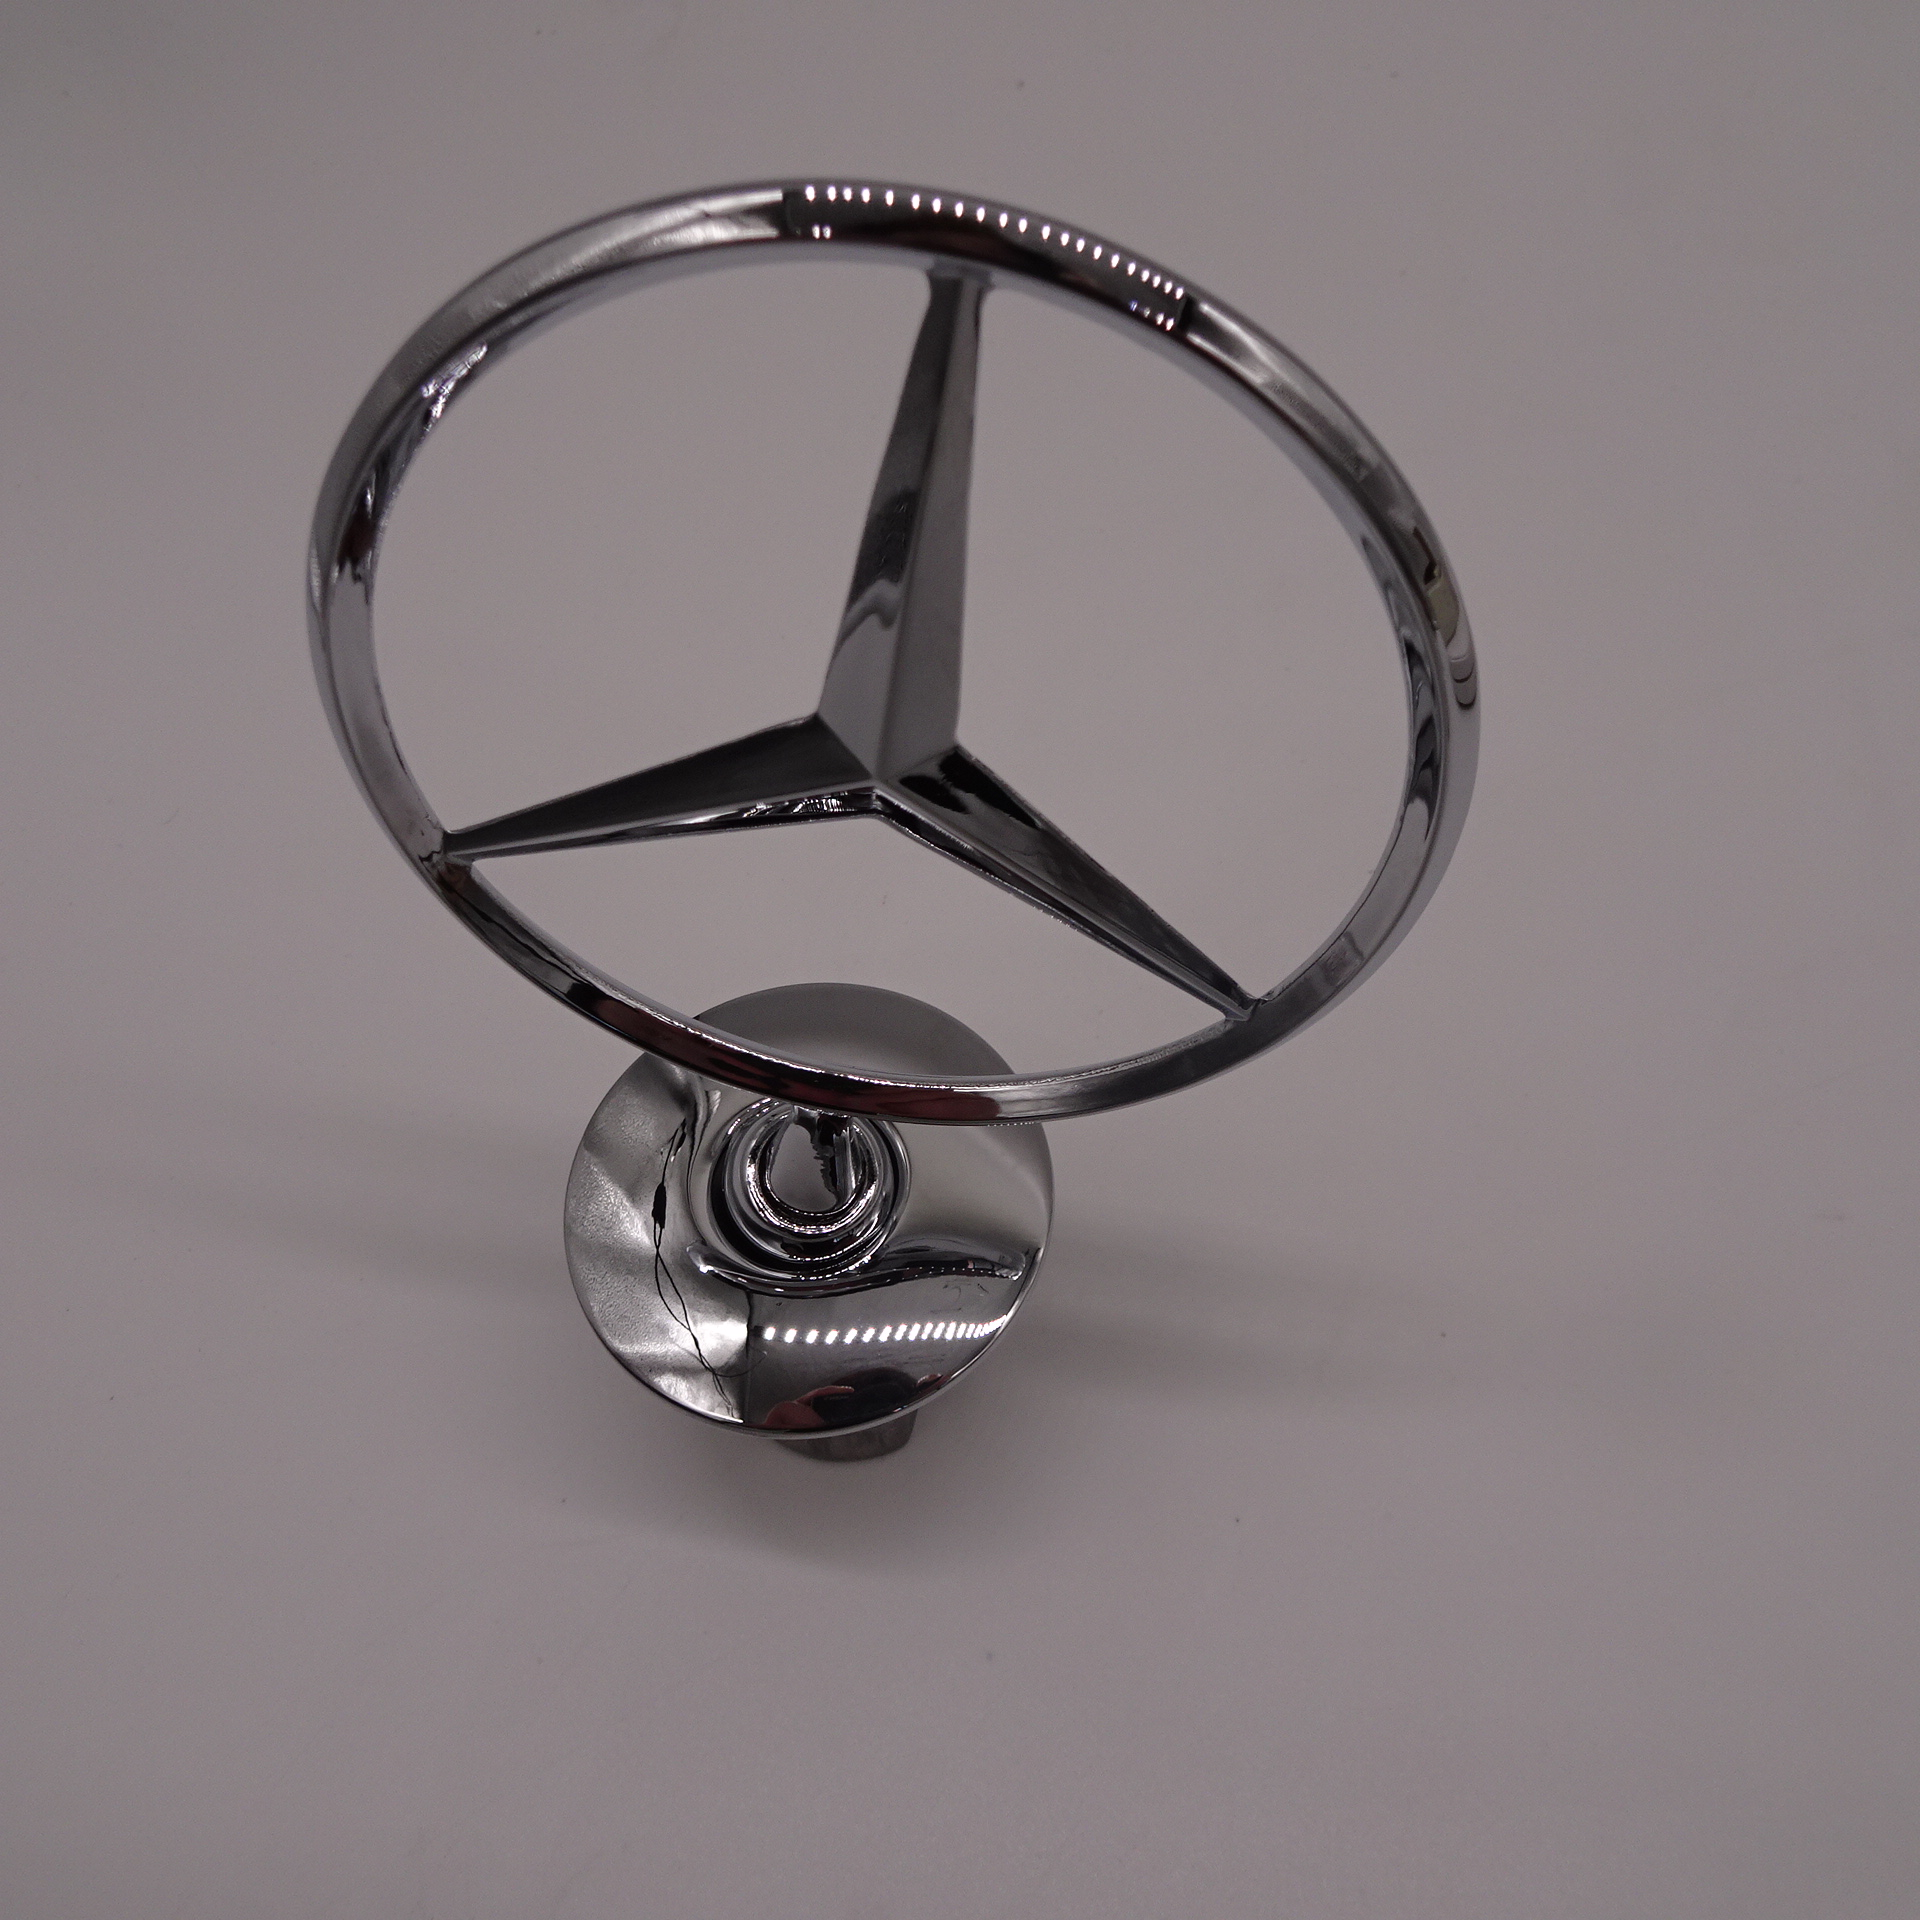 China car emblems wholesale 🇨🇳 alibaba